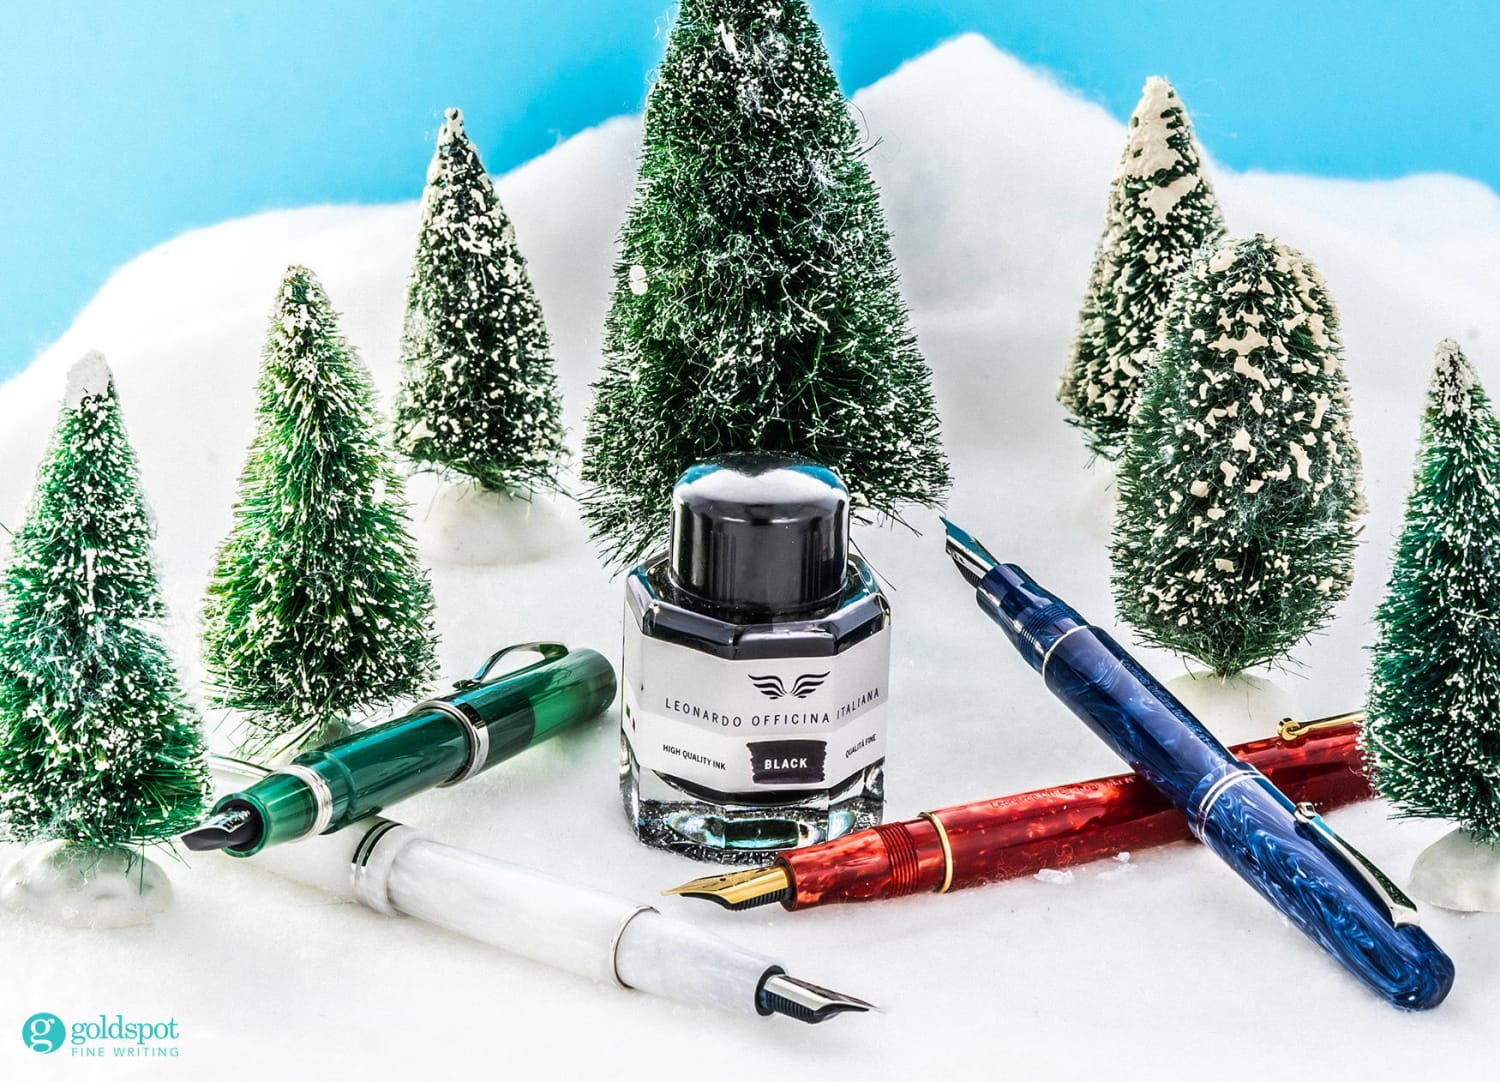 12 Days of Pens 2020